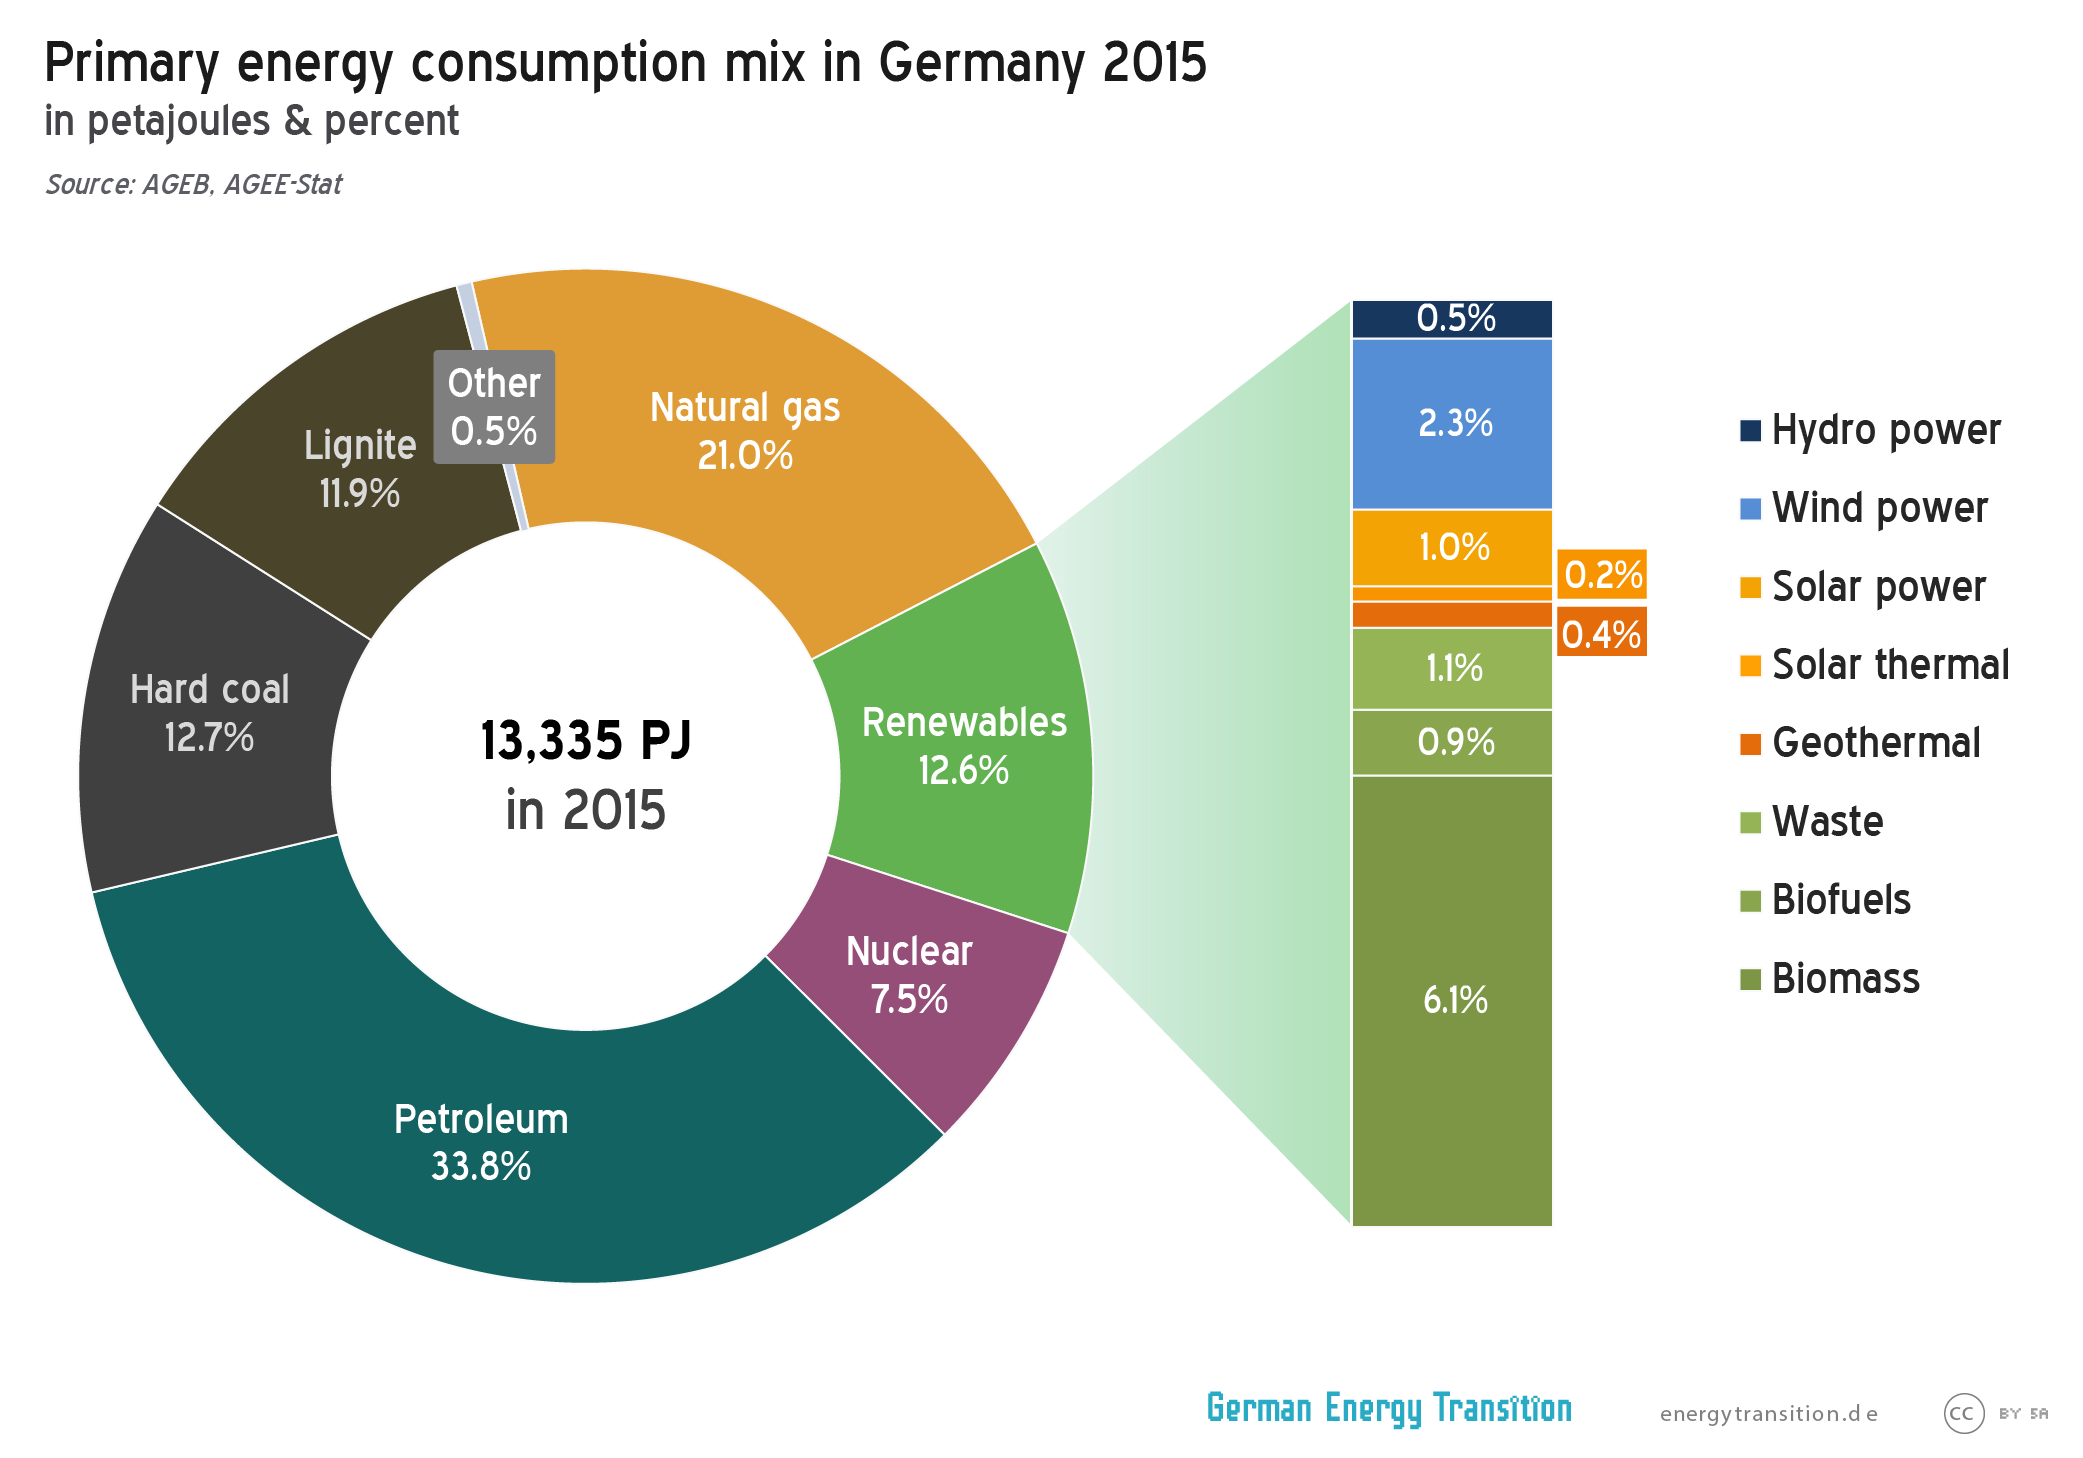 Renewable energy in Germany